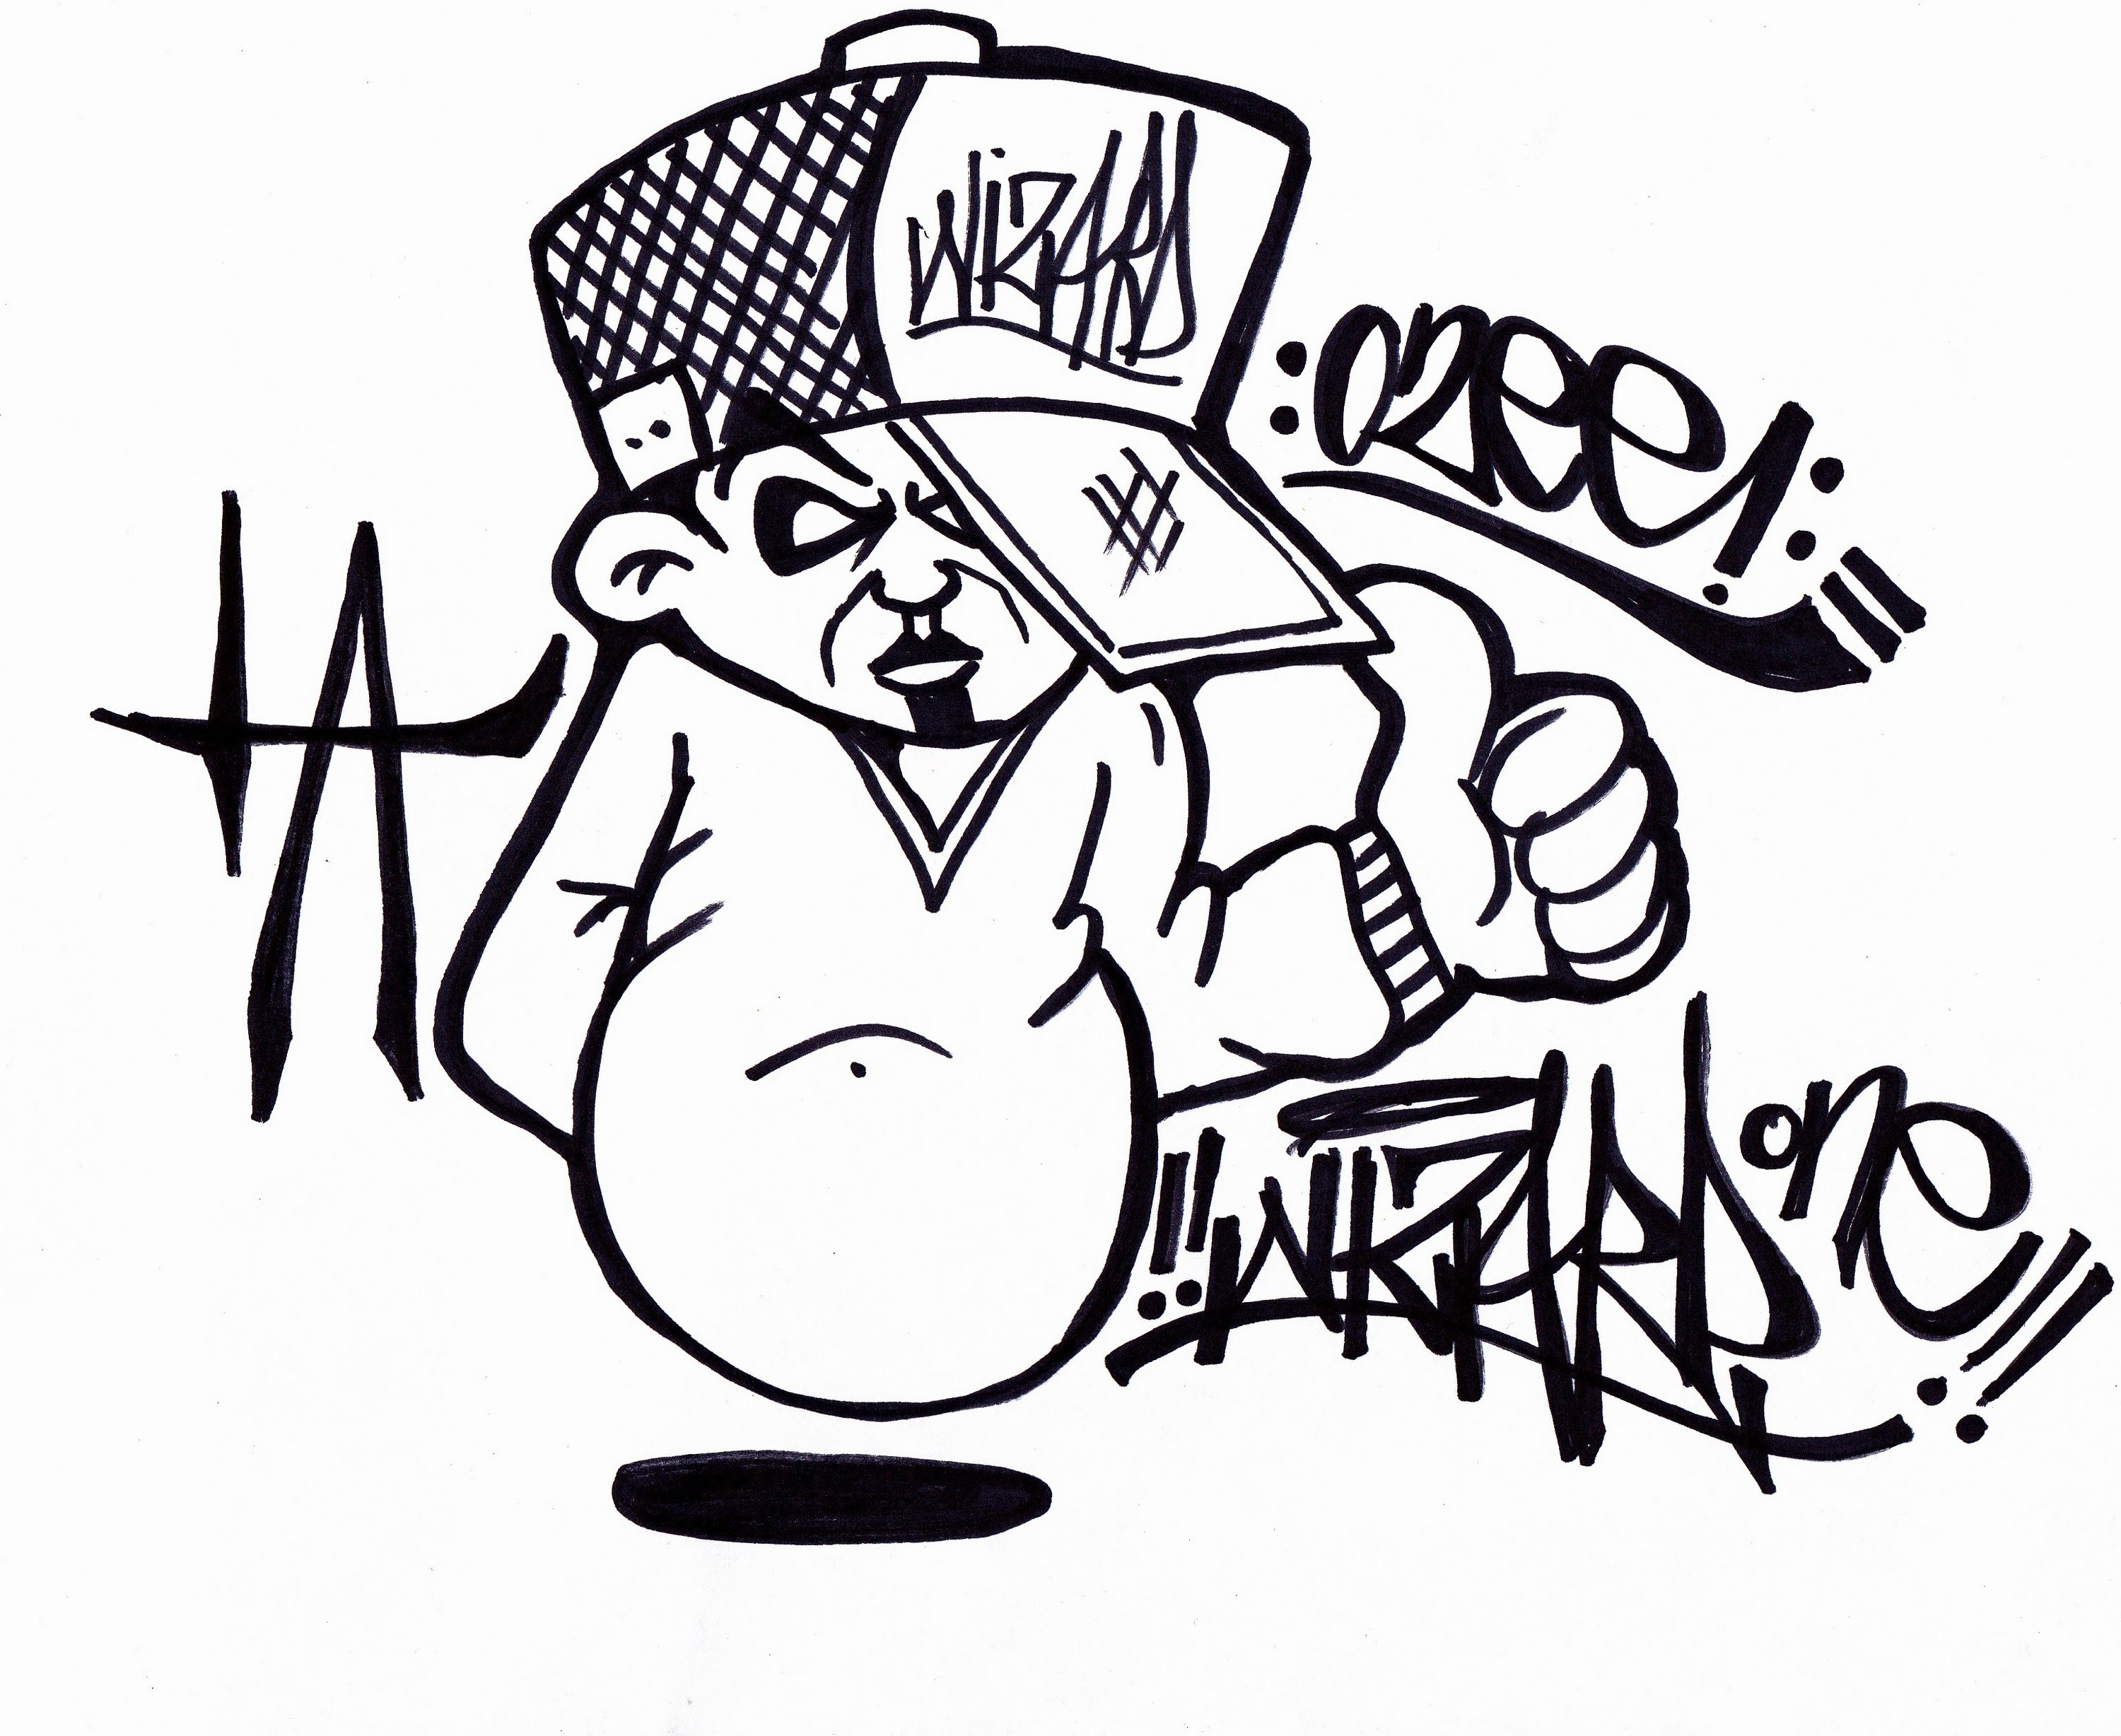 happy birthday drawings step by step ; simple-doodle-art-for-birthday-happy-birthday-drawing-graffiti-black-and-white-graffiti